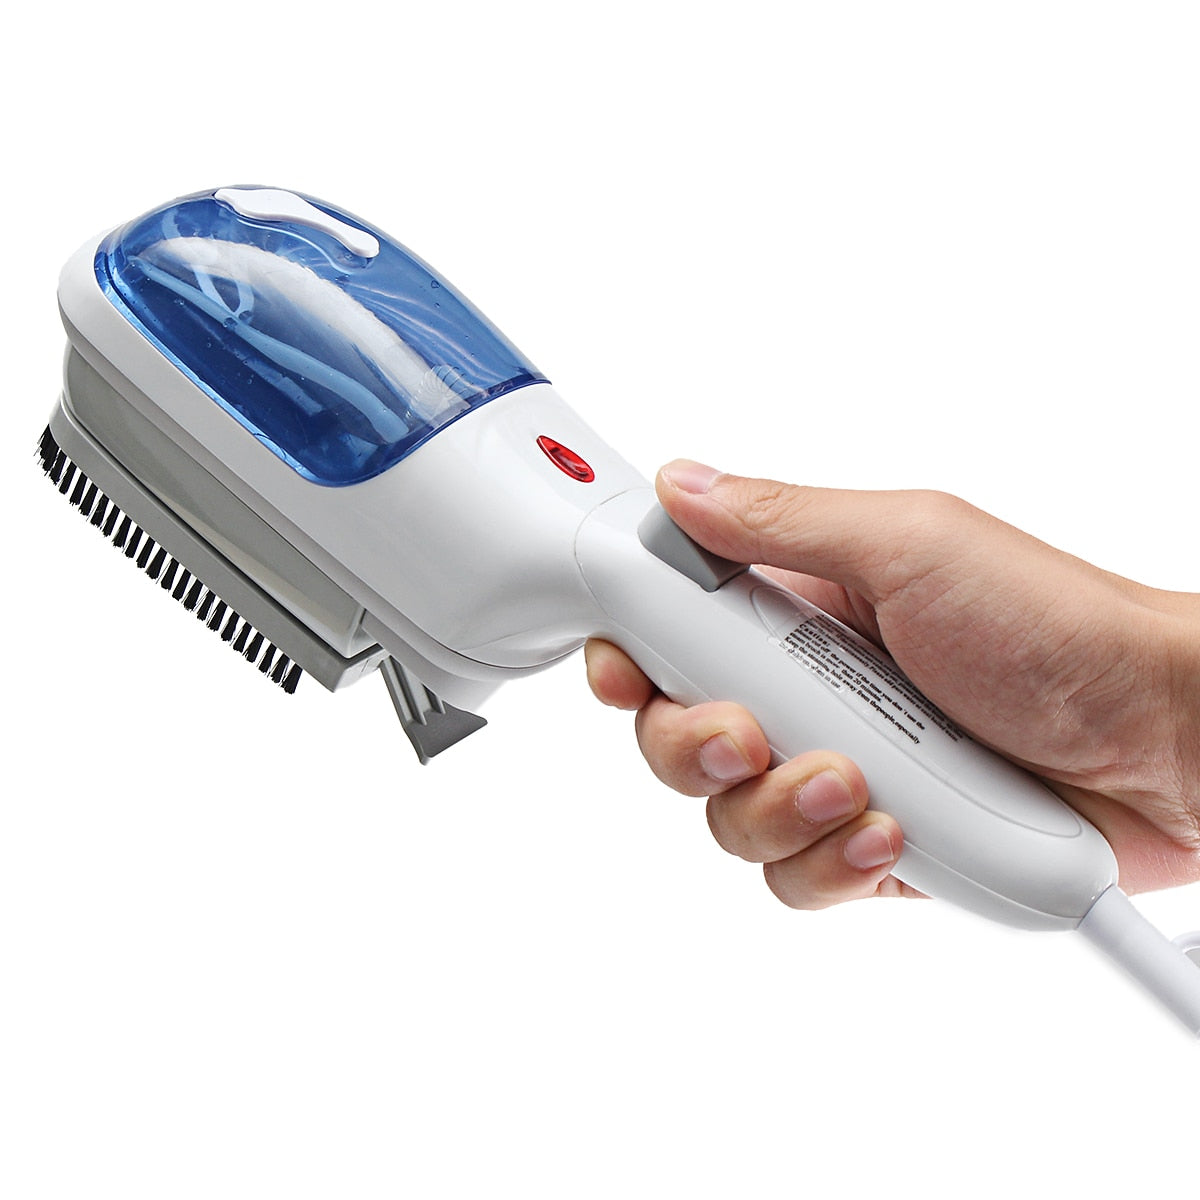 Travel Handheld Garment Steamer - Jeybeauty